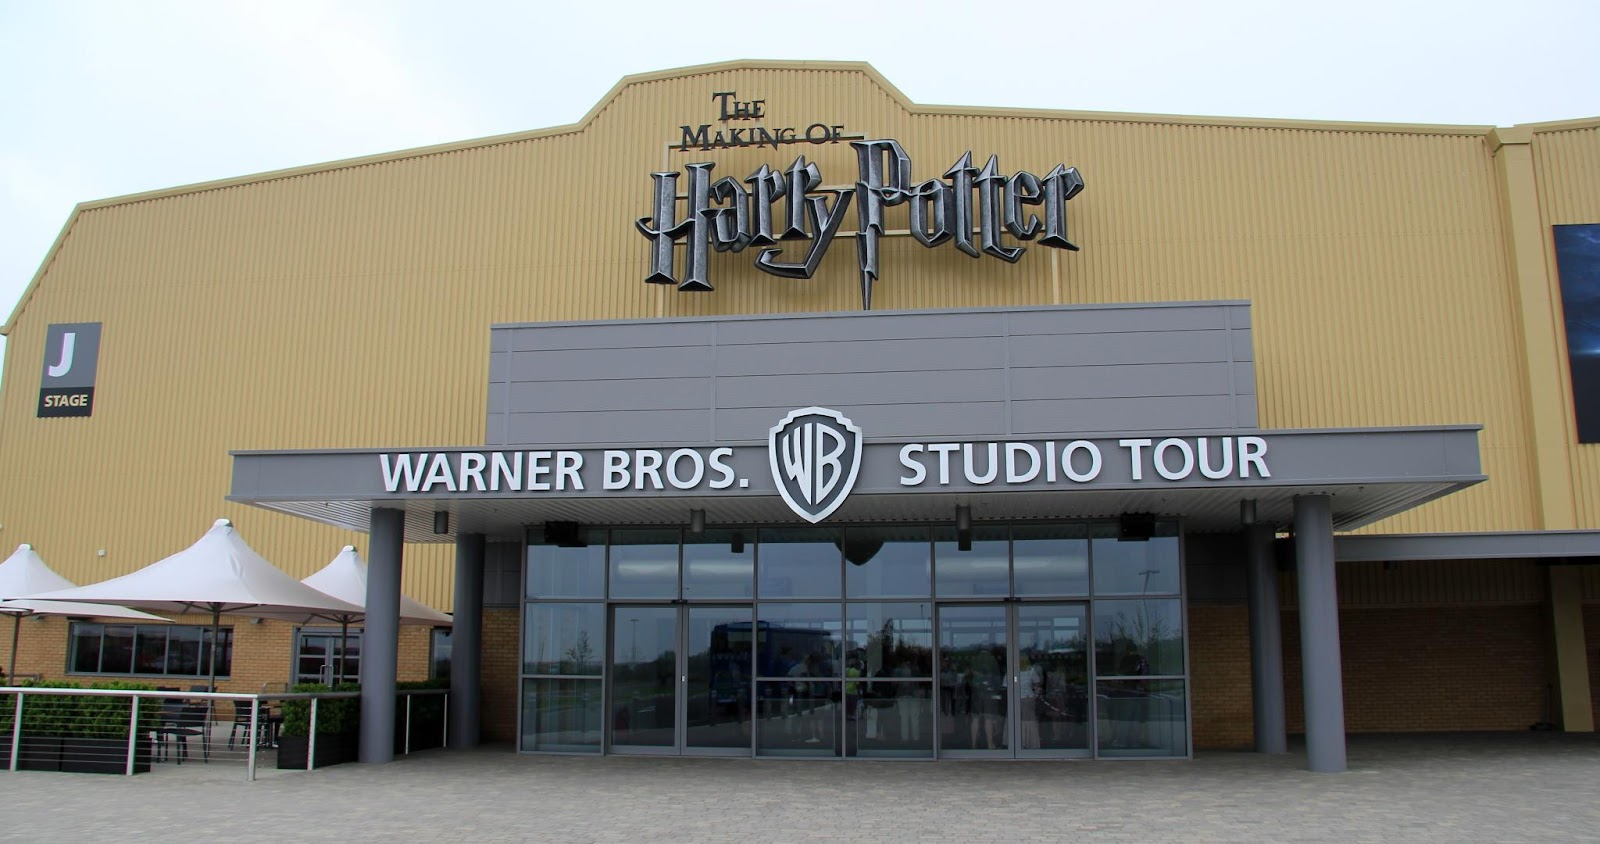 C:\Users\user\Desktop\Reacho\pics\Harry_Potter_Leavesden_entrance.jpg